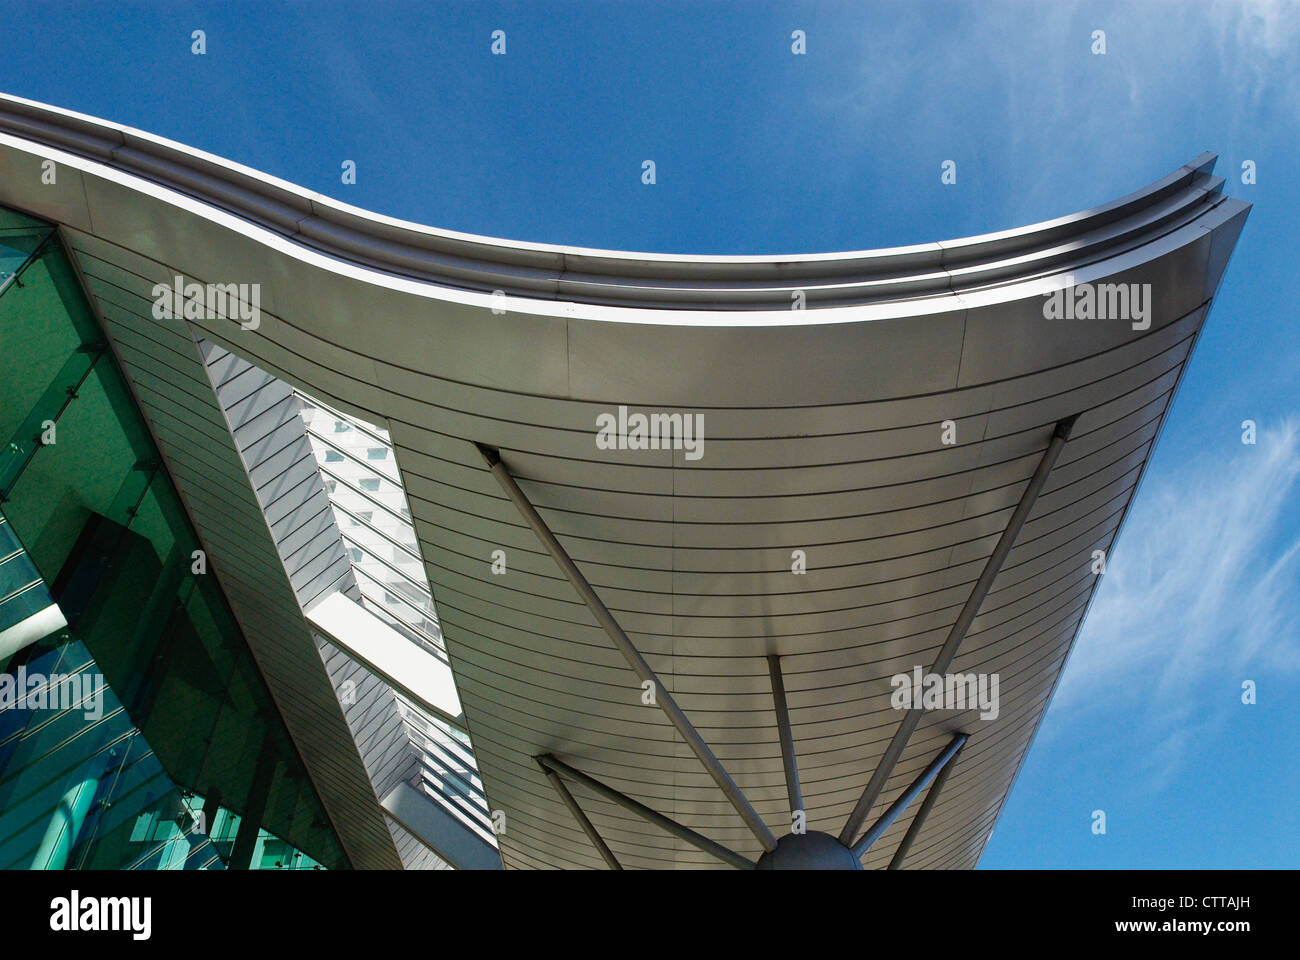 Curved Roof Entrance To Modern Apartments, South London, UK.   Stock Image